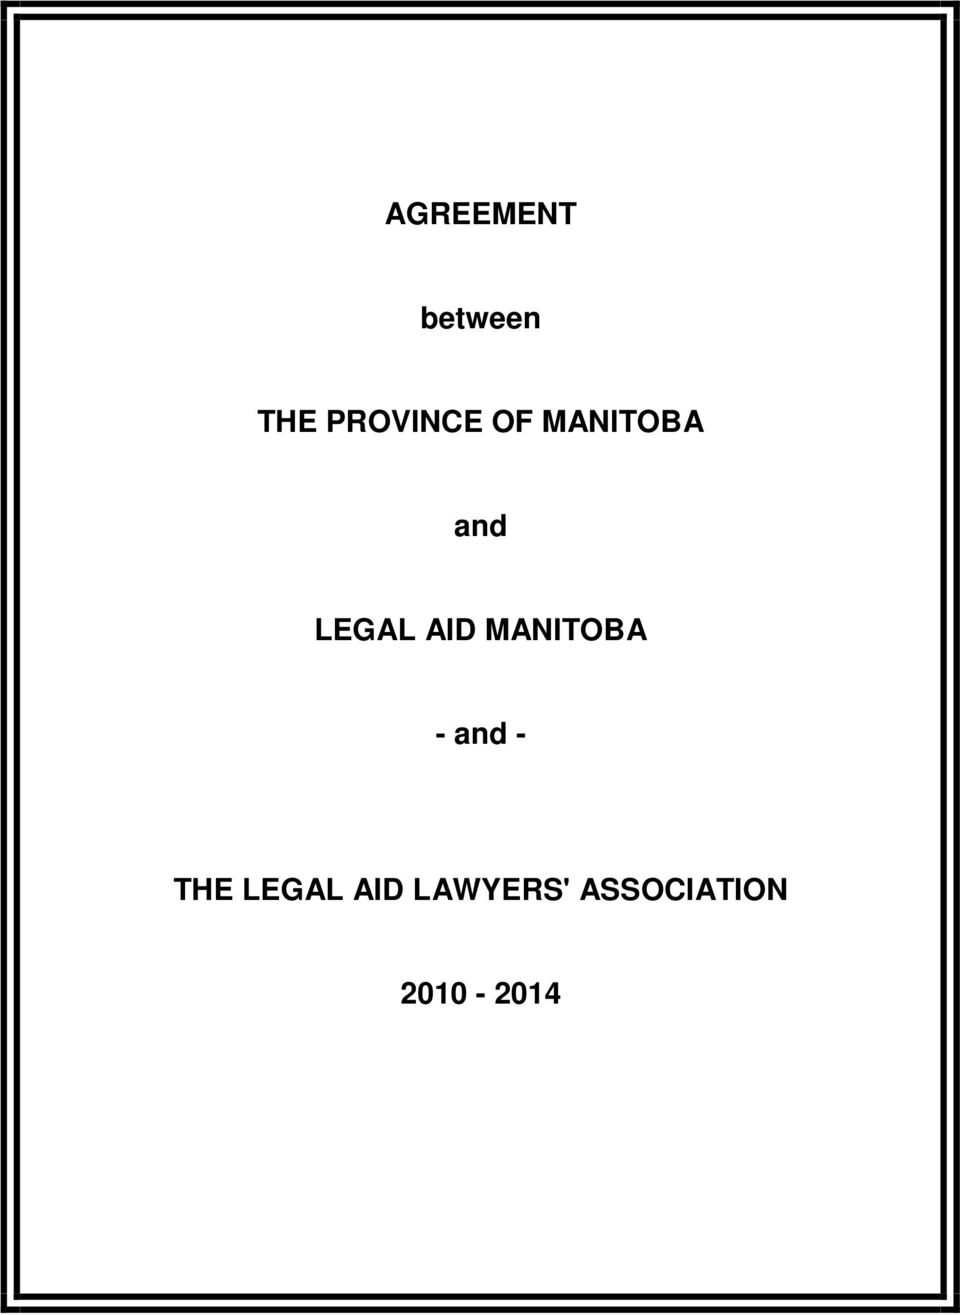 LEGAL AID MANITOBA - and -